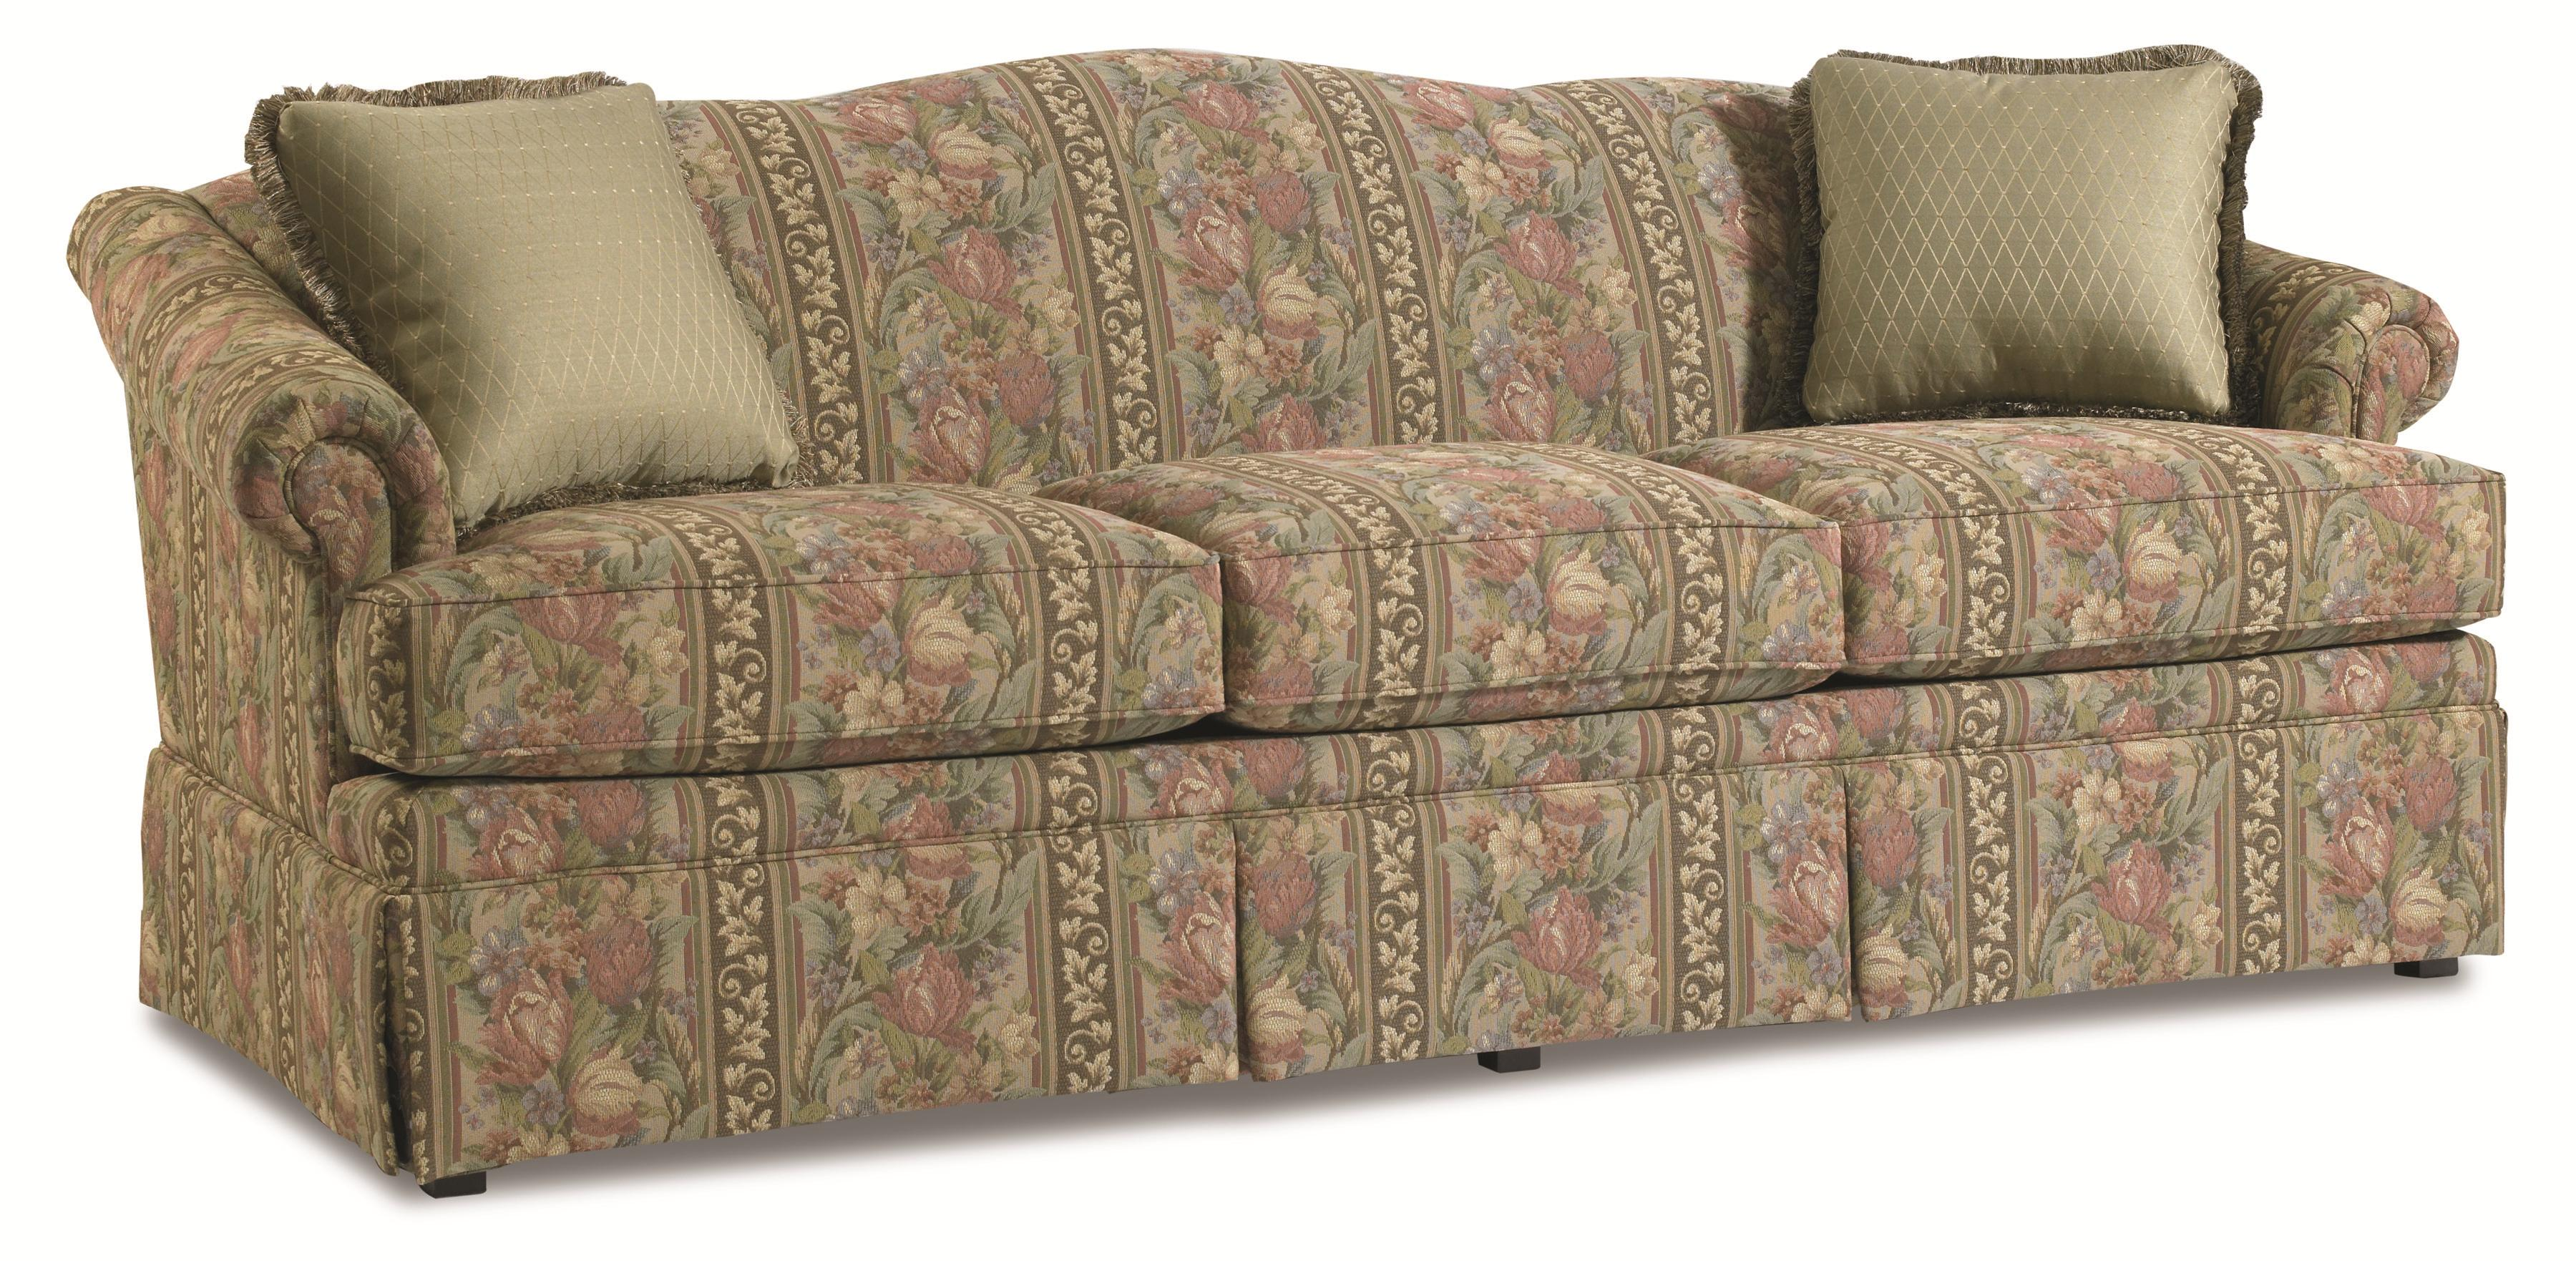 clayton marcus sleeper sofa reviews dwight sectional with chaise and optional ottoman cabinets matttroy